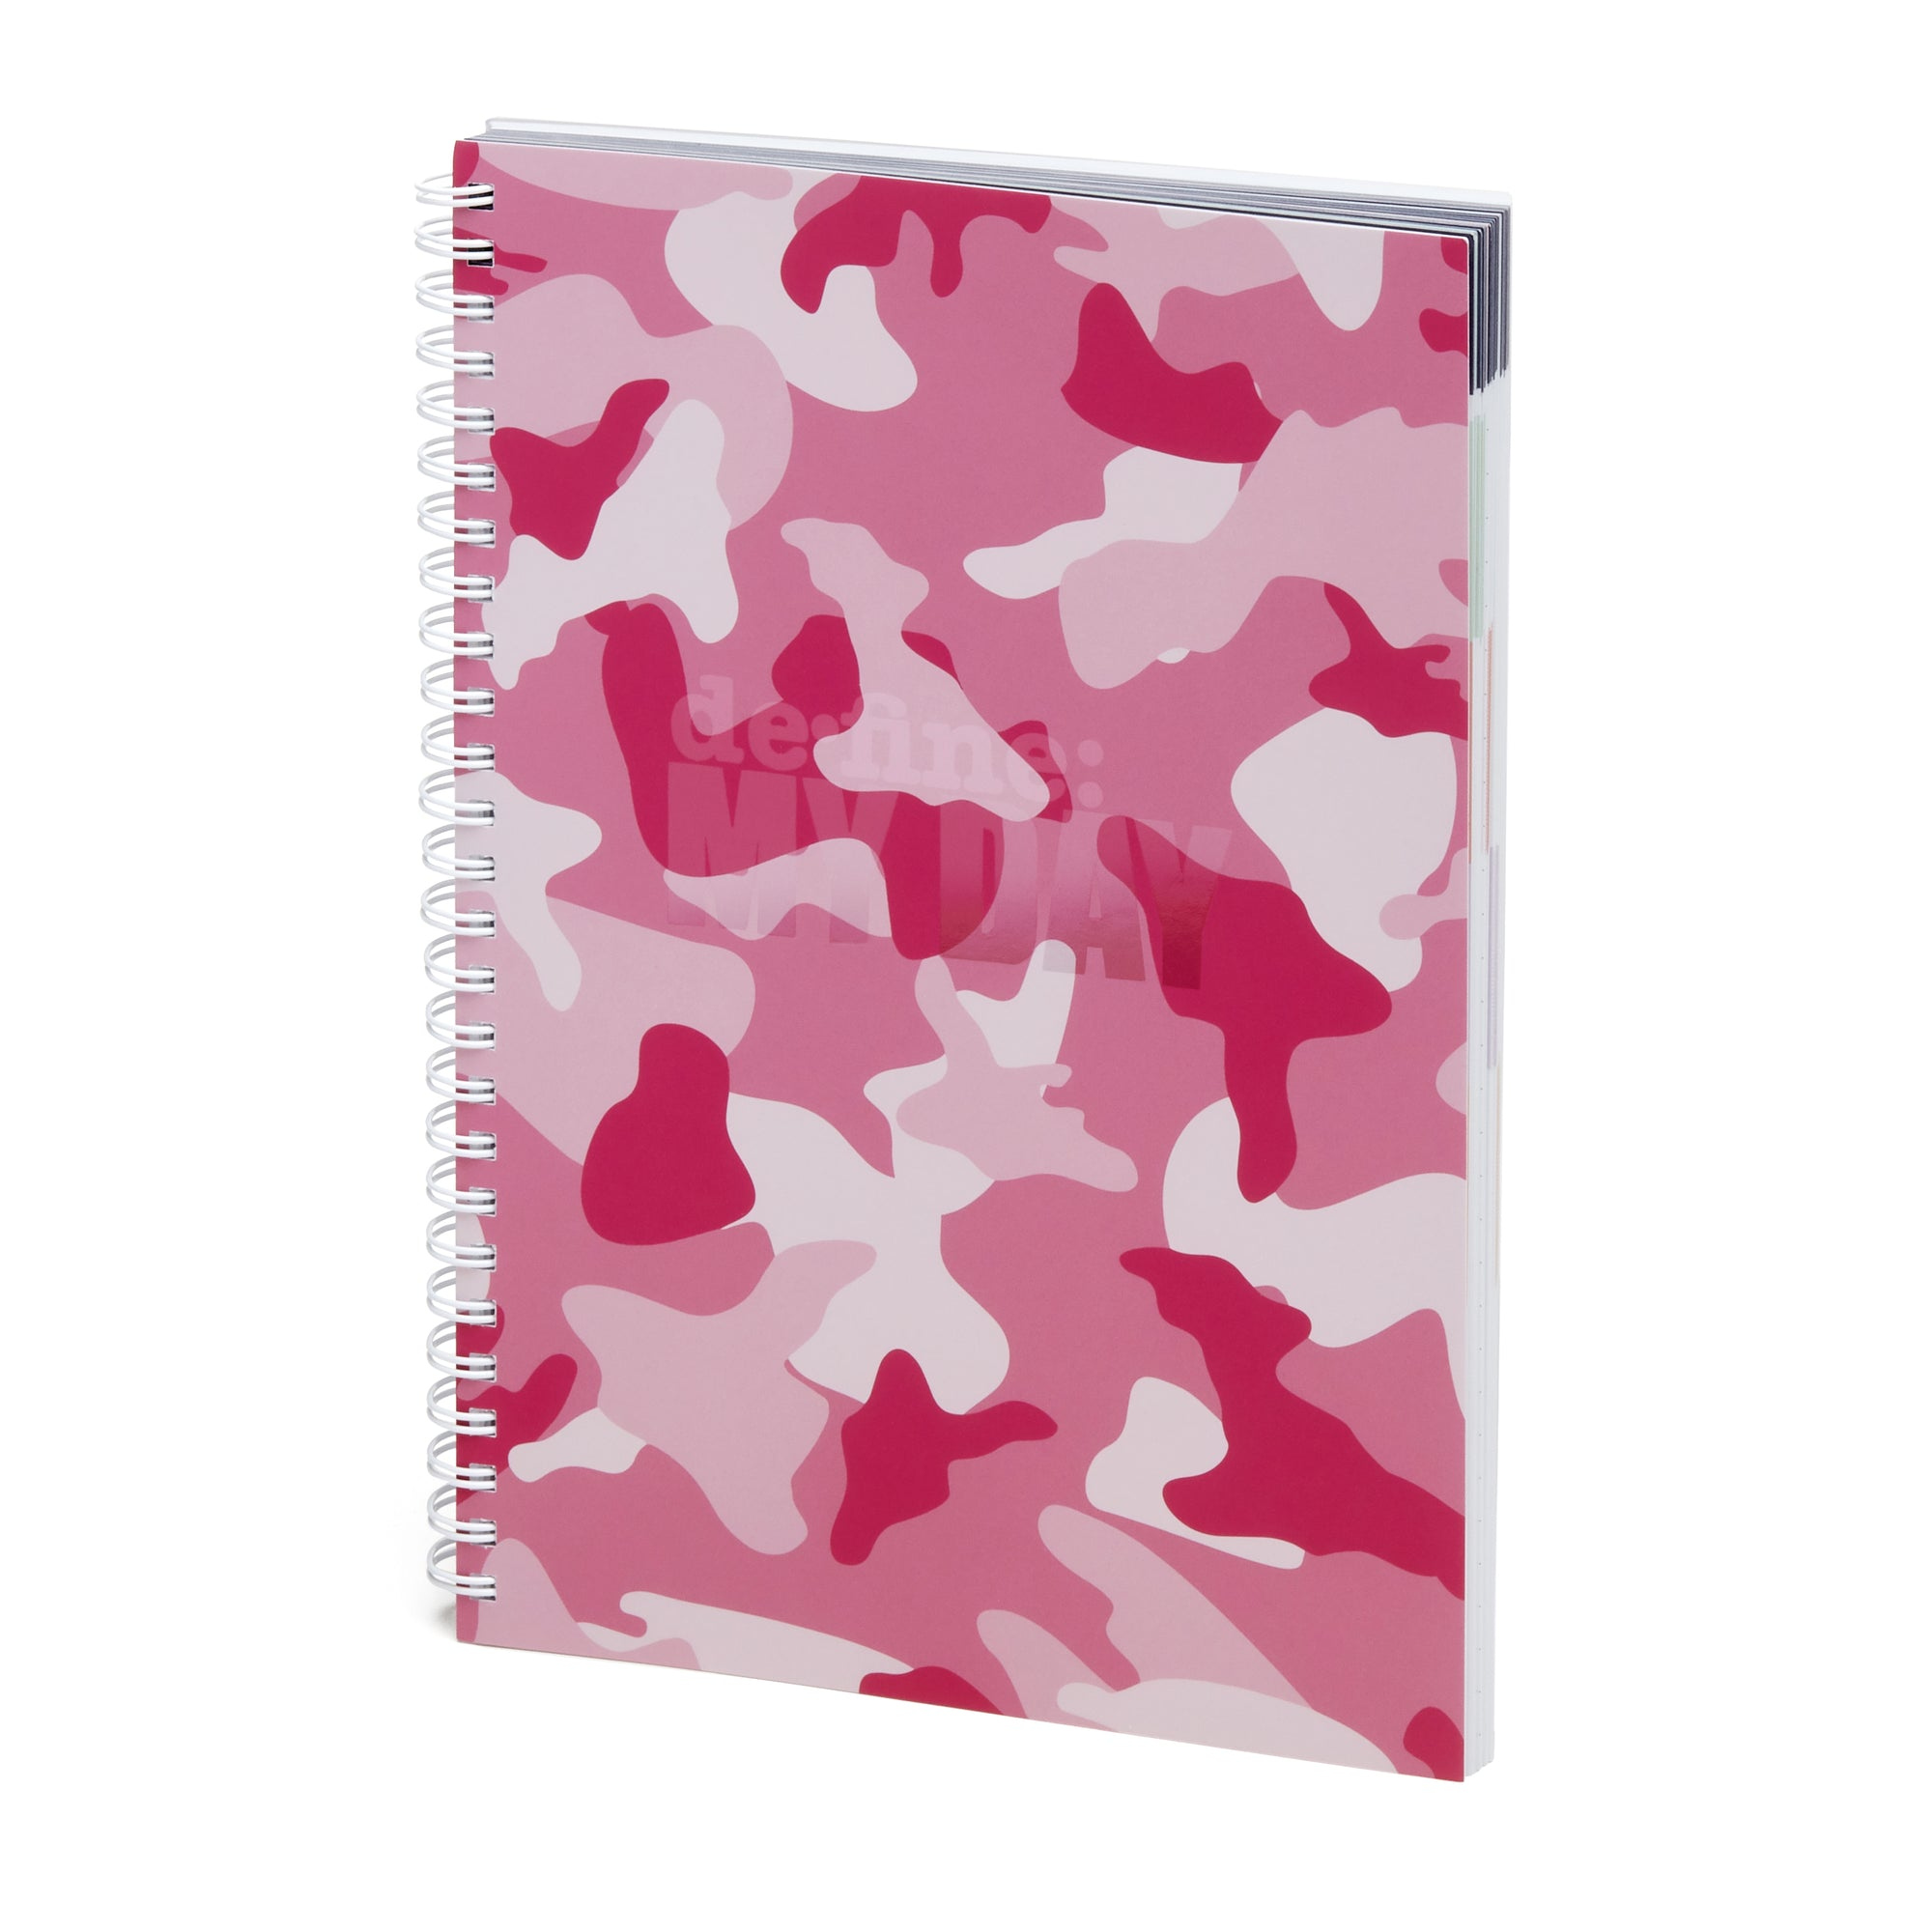 Define My Day™ Planner & Journal Pink Camo Cover